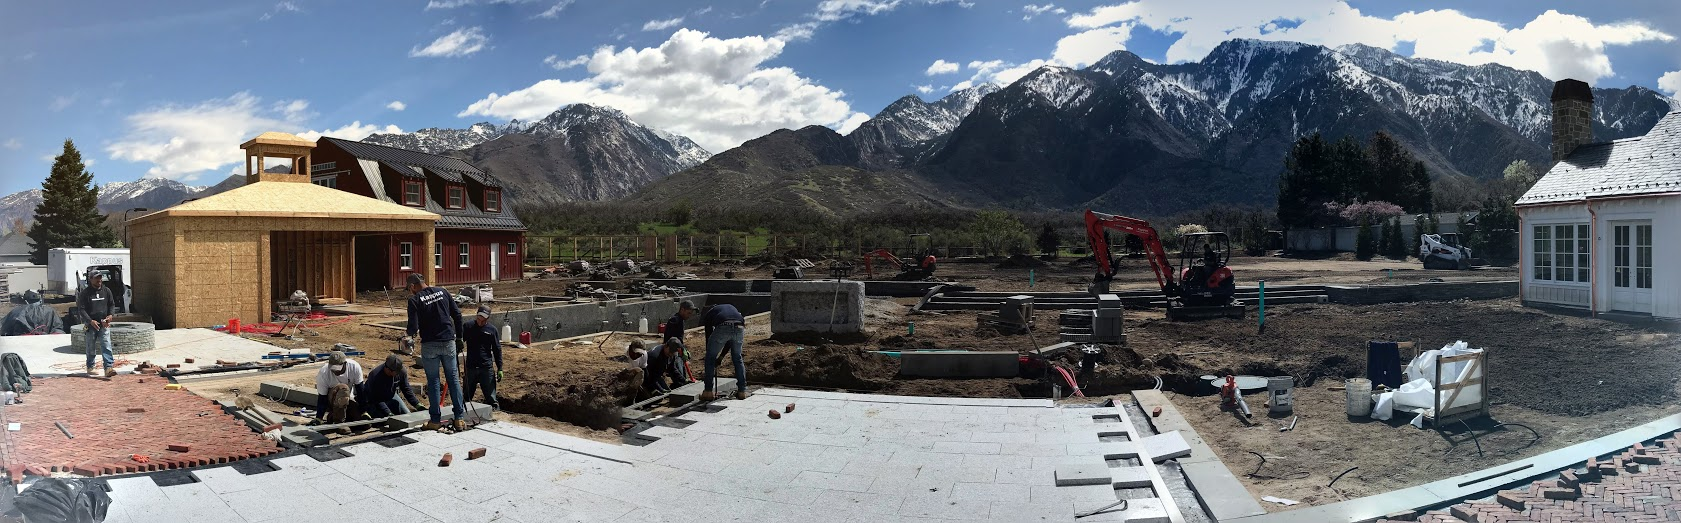 "Large Scale project going on at the base of the amazing Wasatch Mountains. We usually wait to post the ""after"" photos, but it's fun to see our crews hard at work during the process, too!"